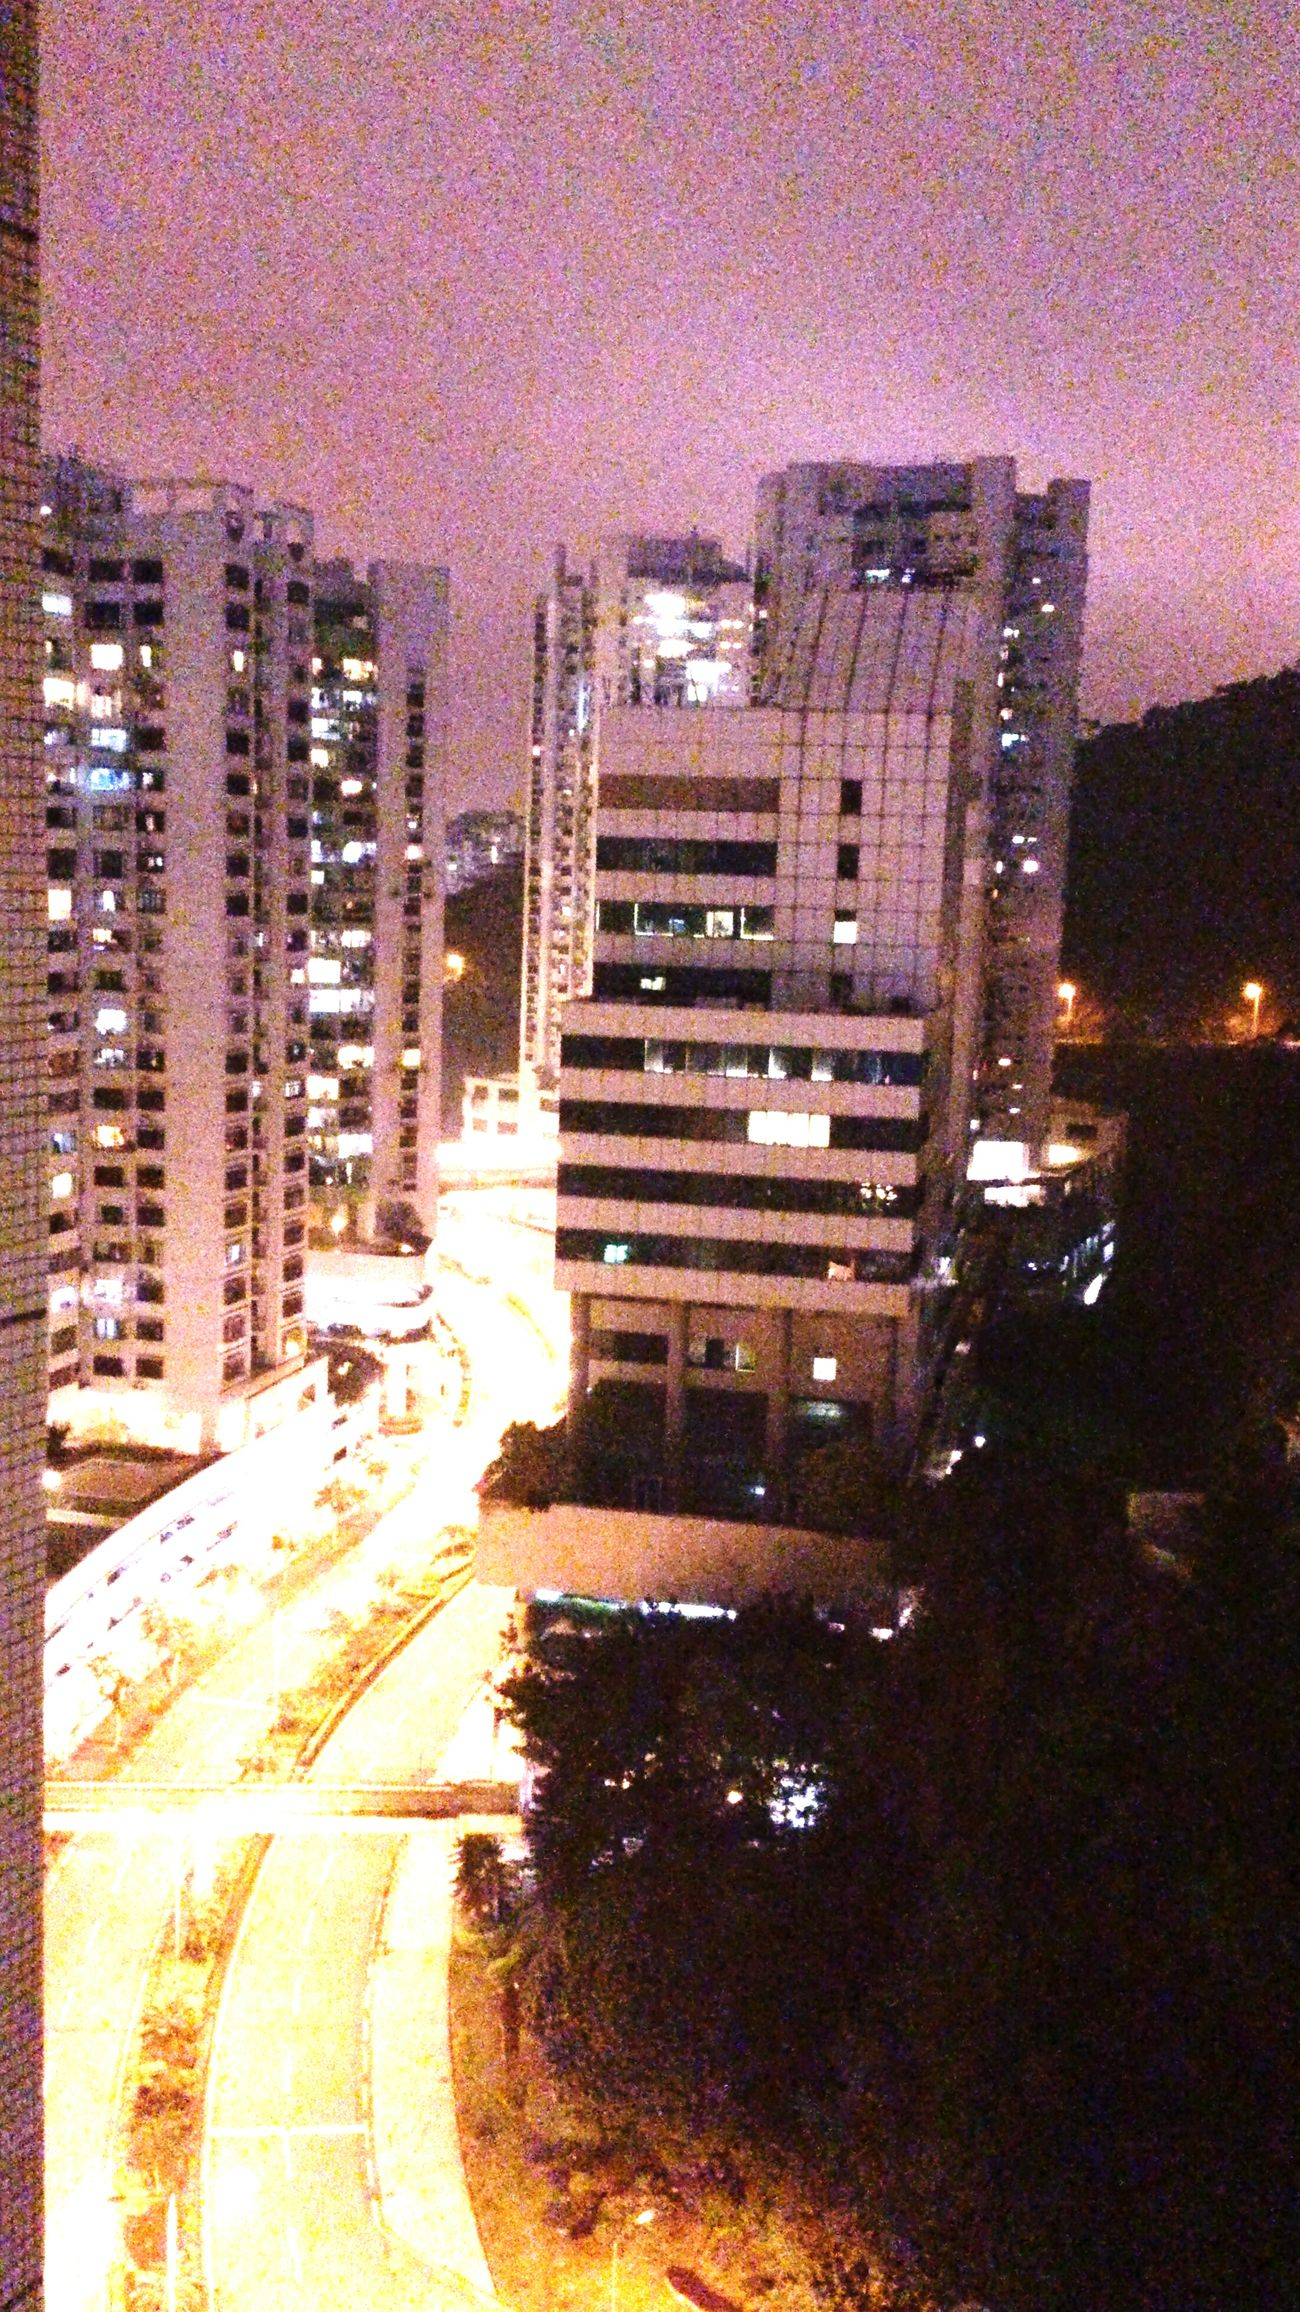 / Taipa Island/ BedroomView / City At Night /